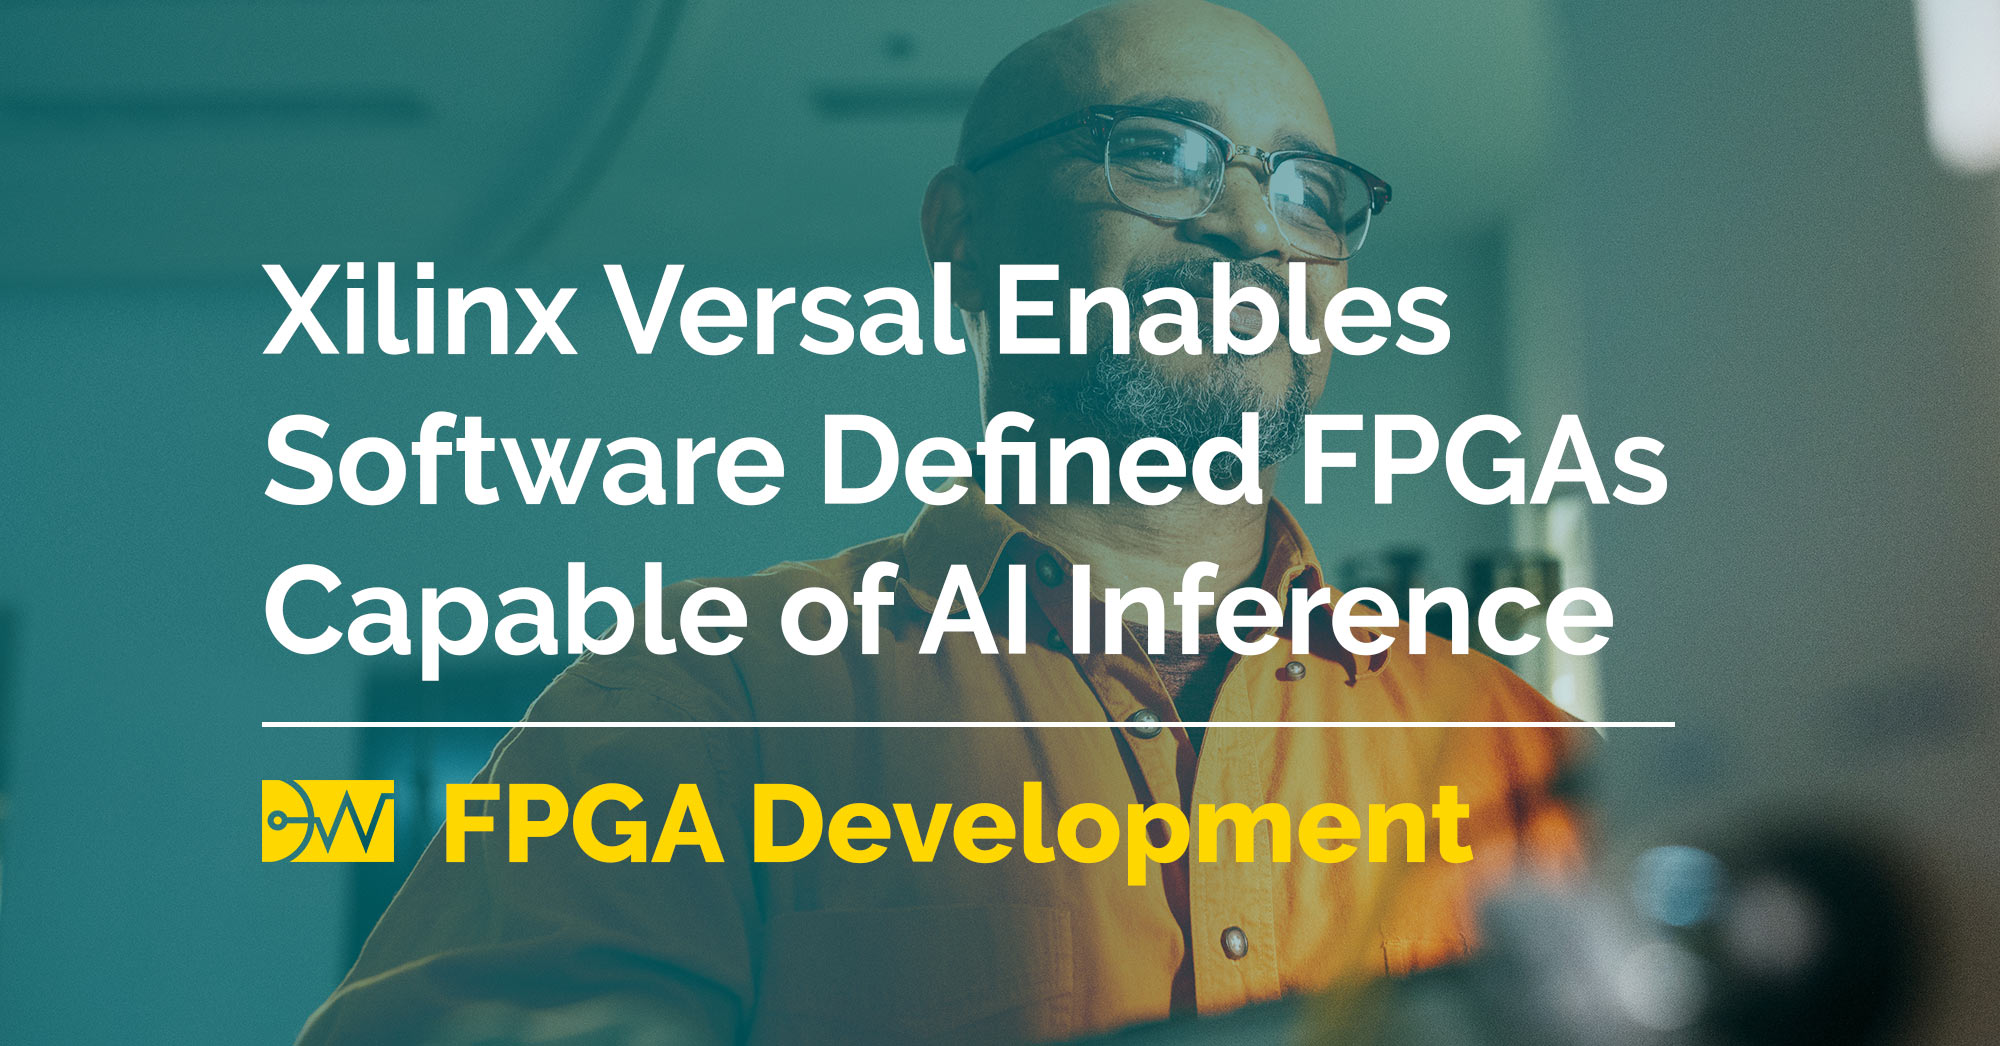 Xilinx is Expanding the Boundaries of FPGA Acceleration with